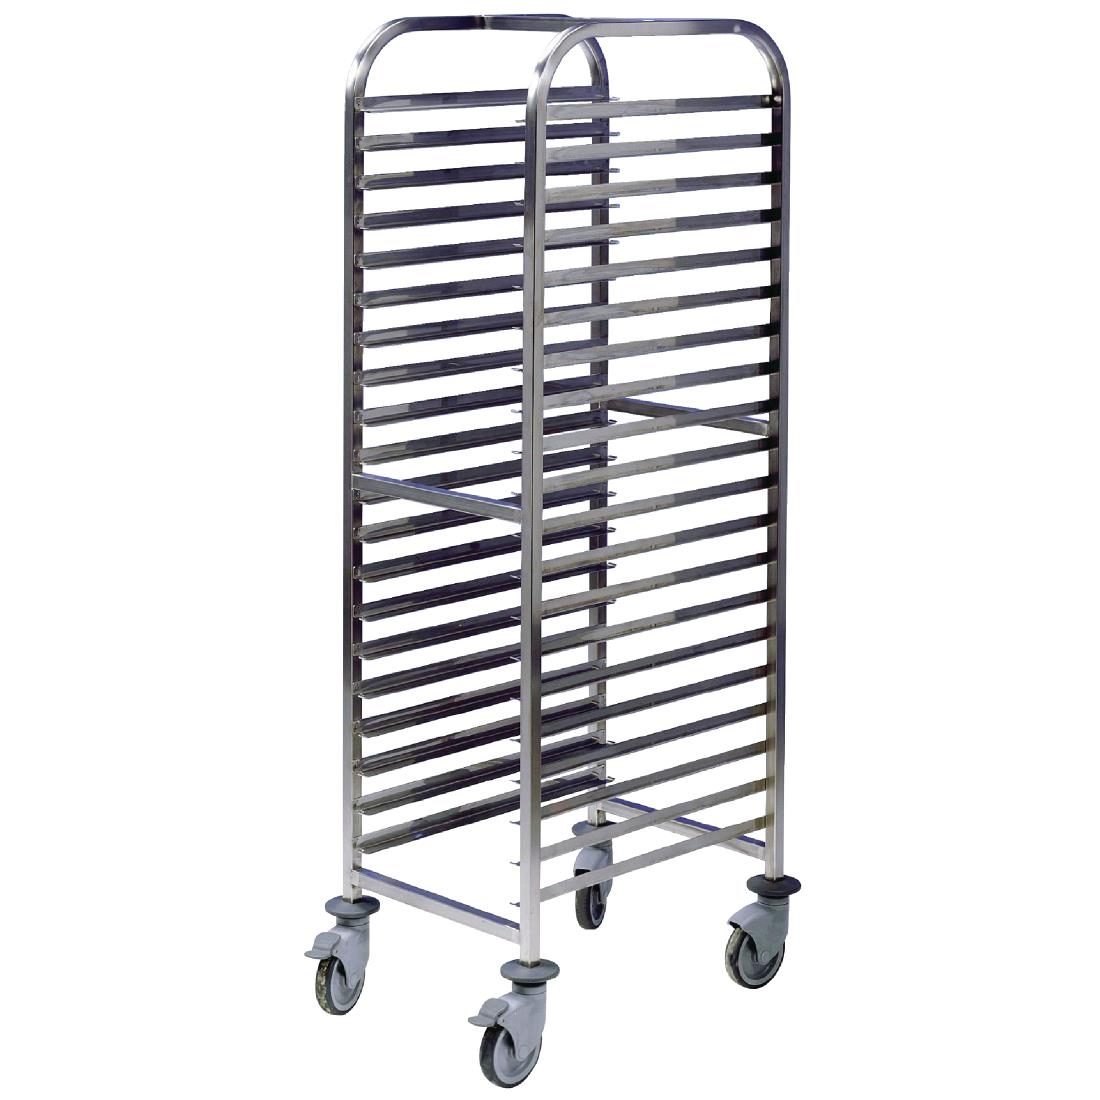 Image of EAIS Stainless Steel Trolley 20 Shelves